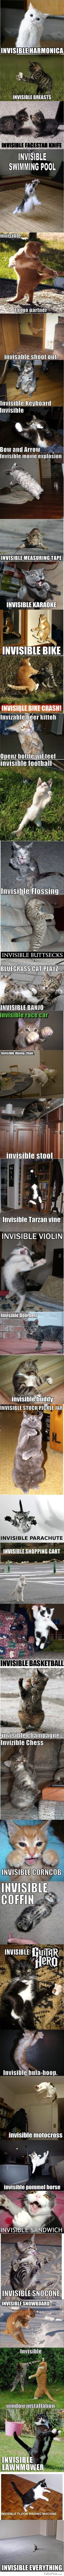 Best of Invisible Cat